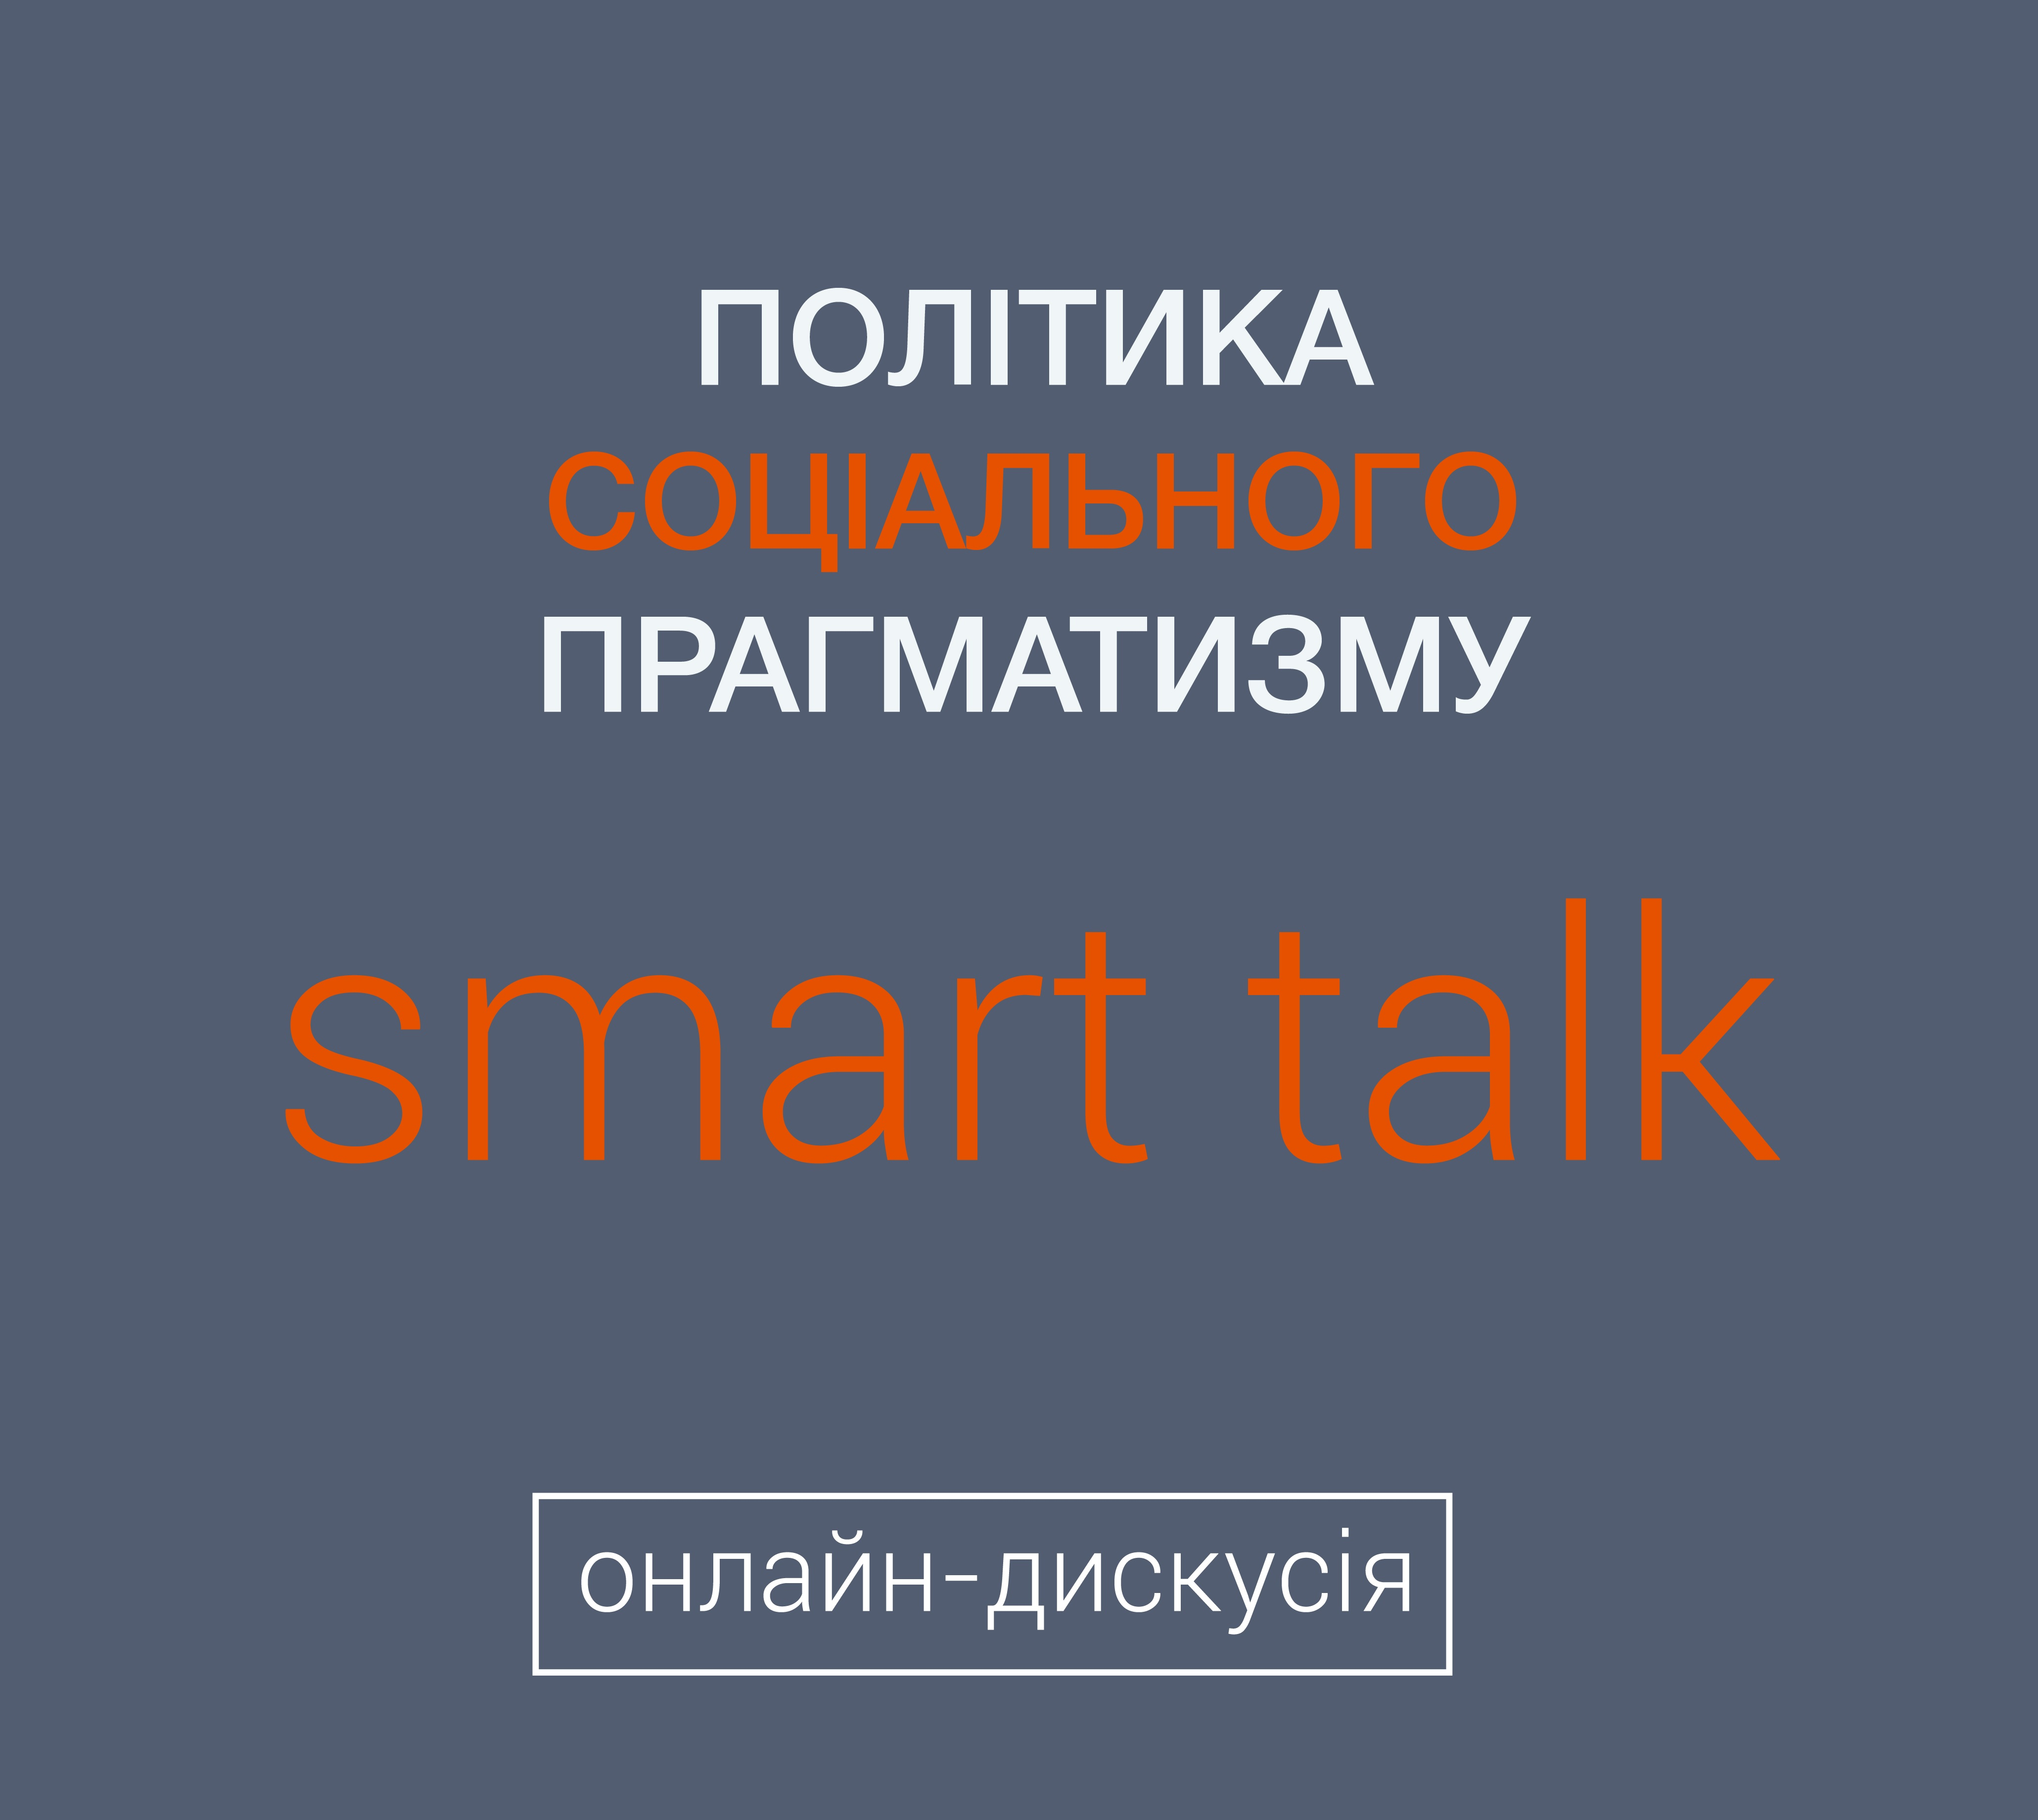 Smart Talk: professional discussions on acute social topics